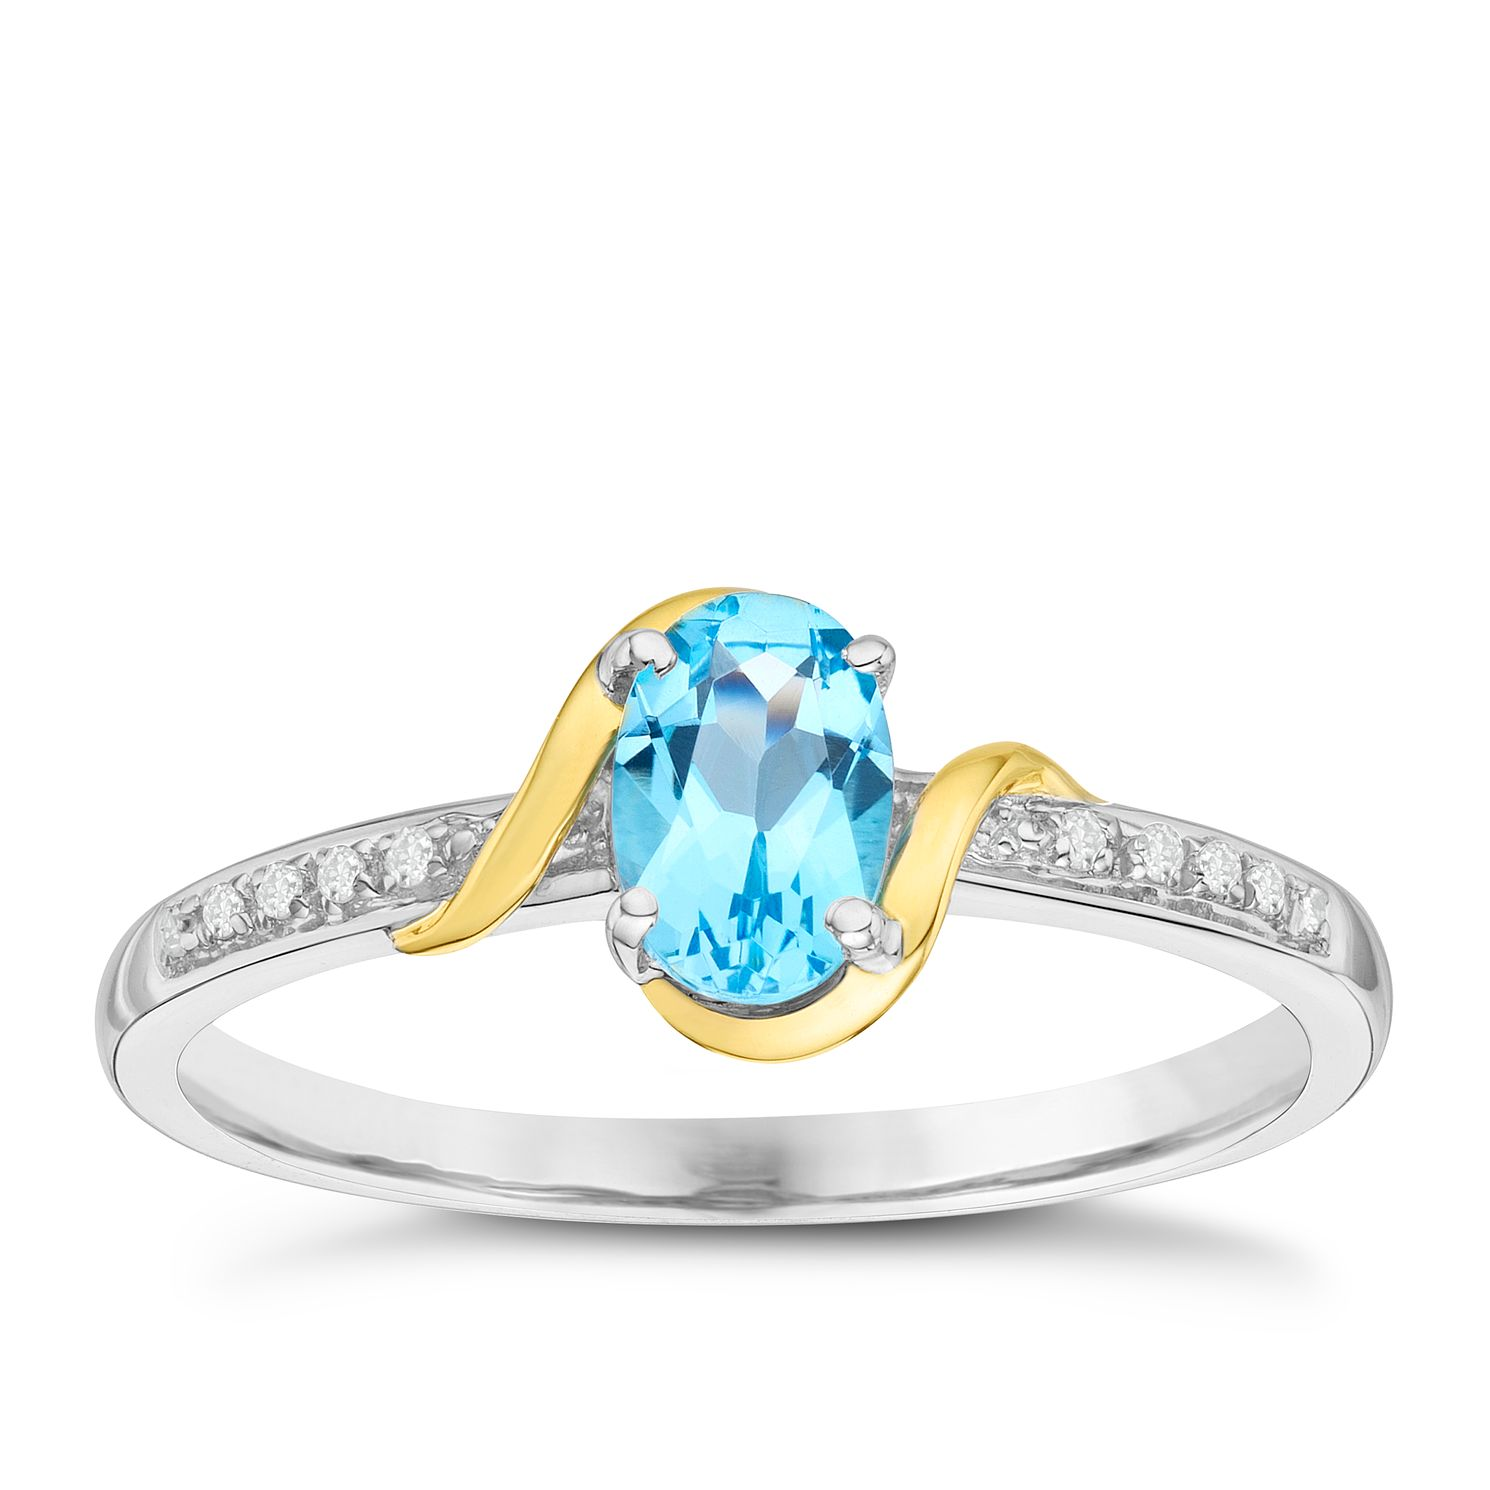 rings enchanted disney s cinderella fine and diamond ring carriage topaz blue london jewelry